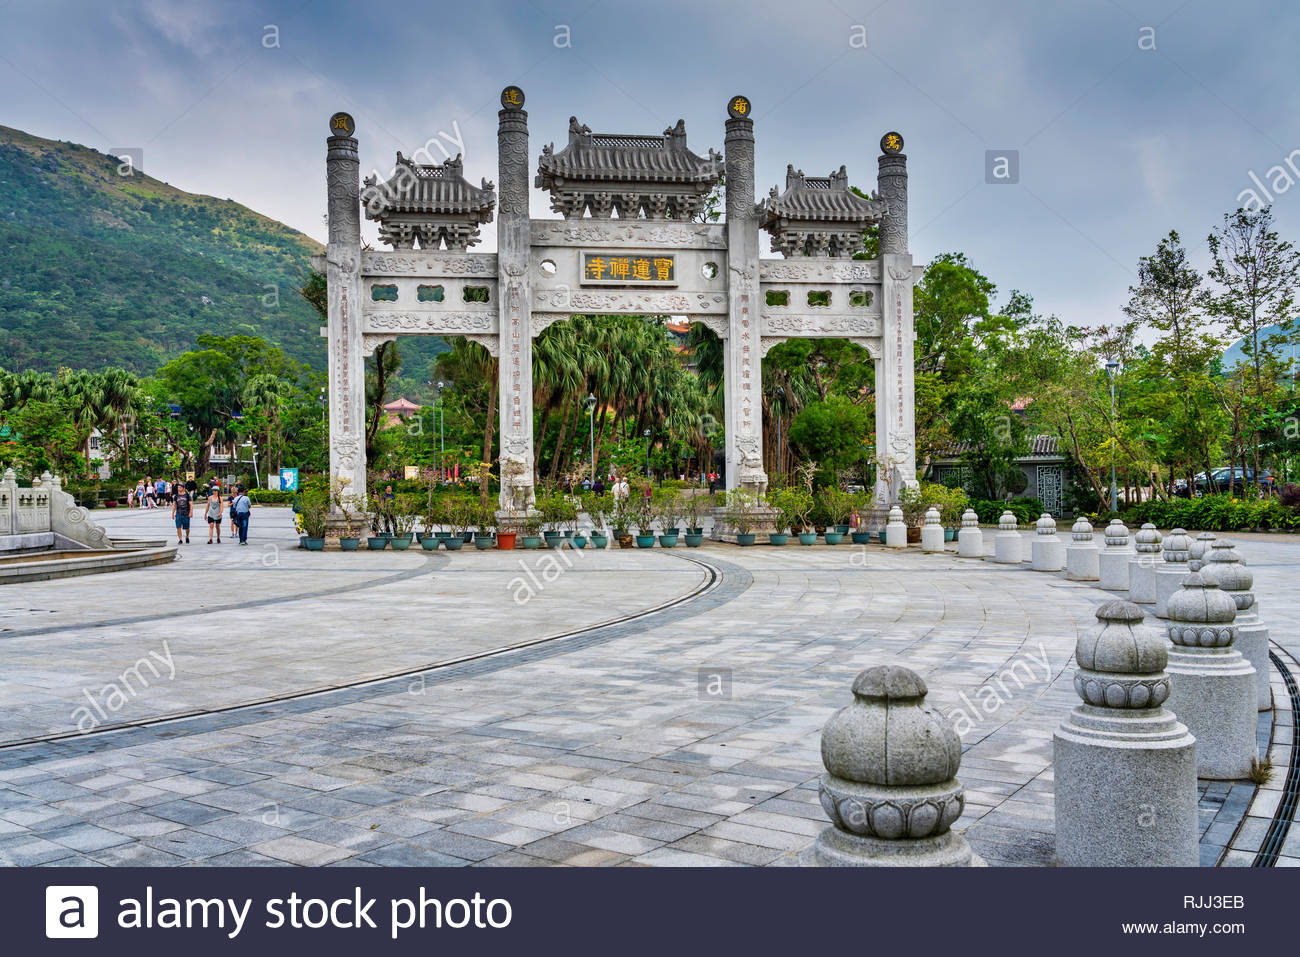 The Po Lin Monastery gate on Lantau Island, Hong Kong, China, Asia. - Stock Image